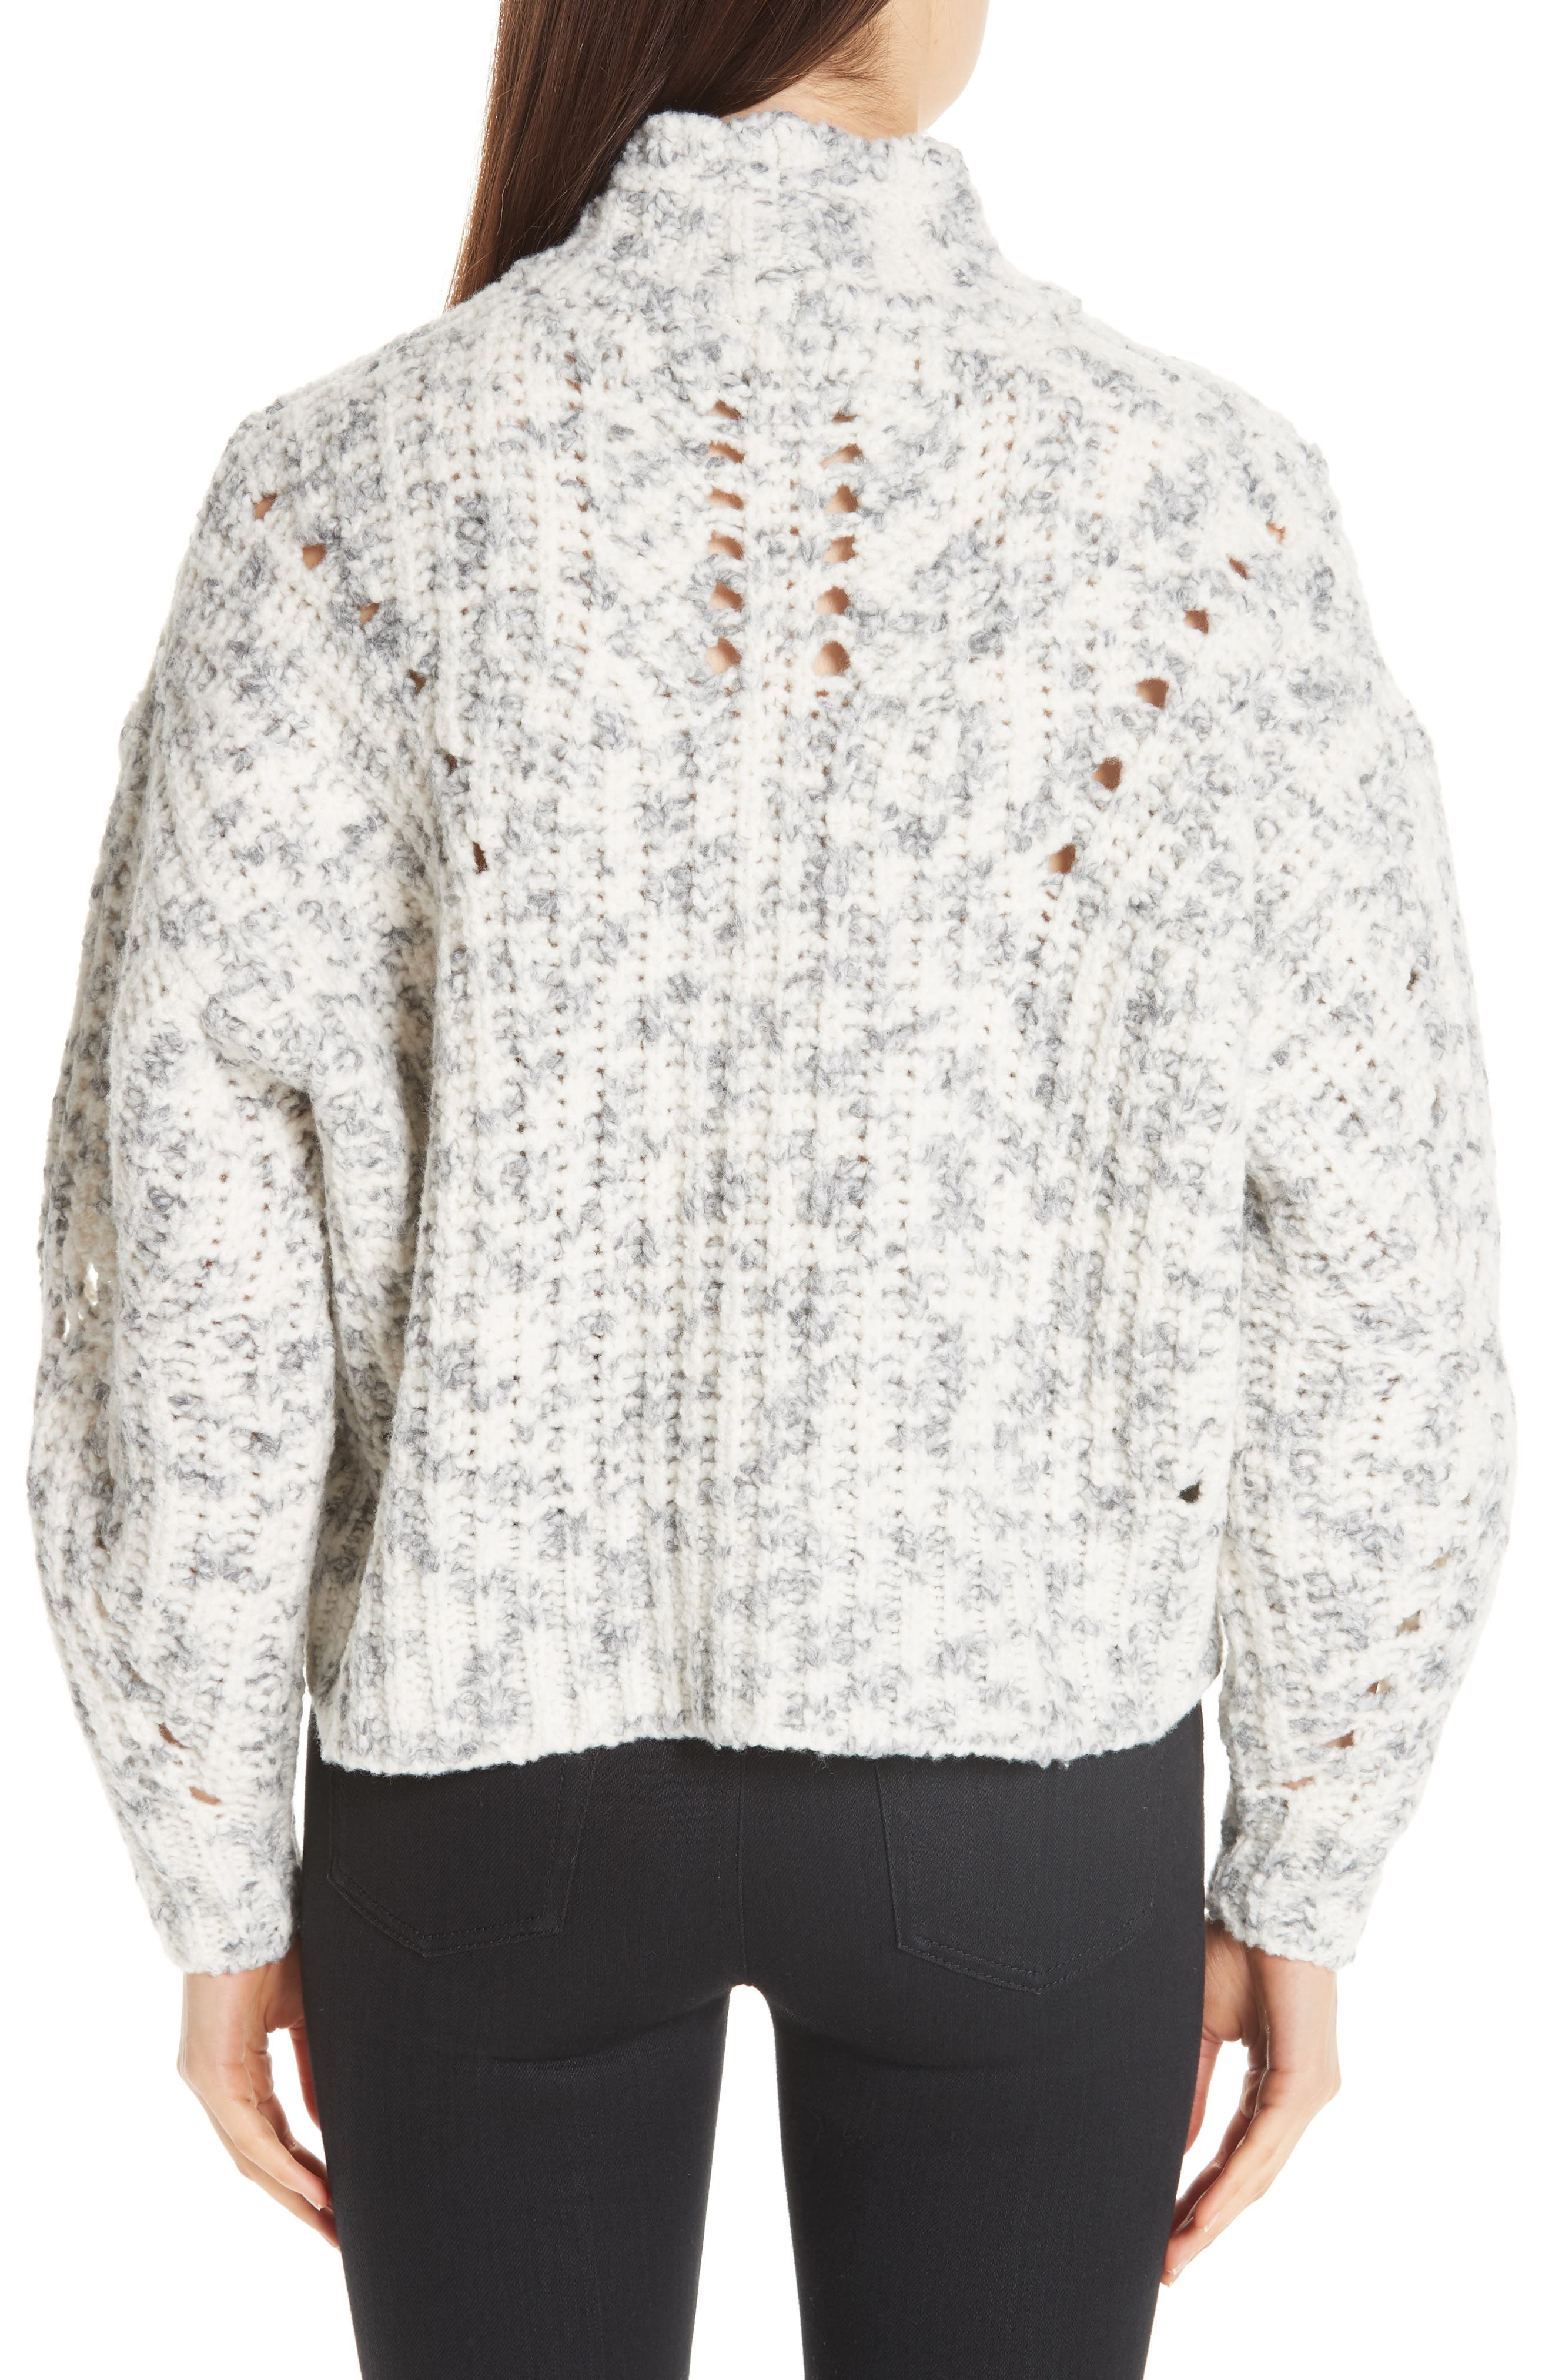 Jilly Wool Sweater,                             Alternate thumbnail 2, color,                             900